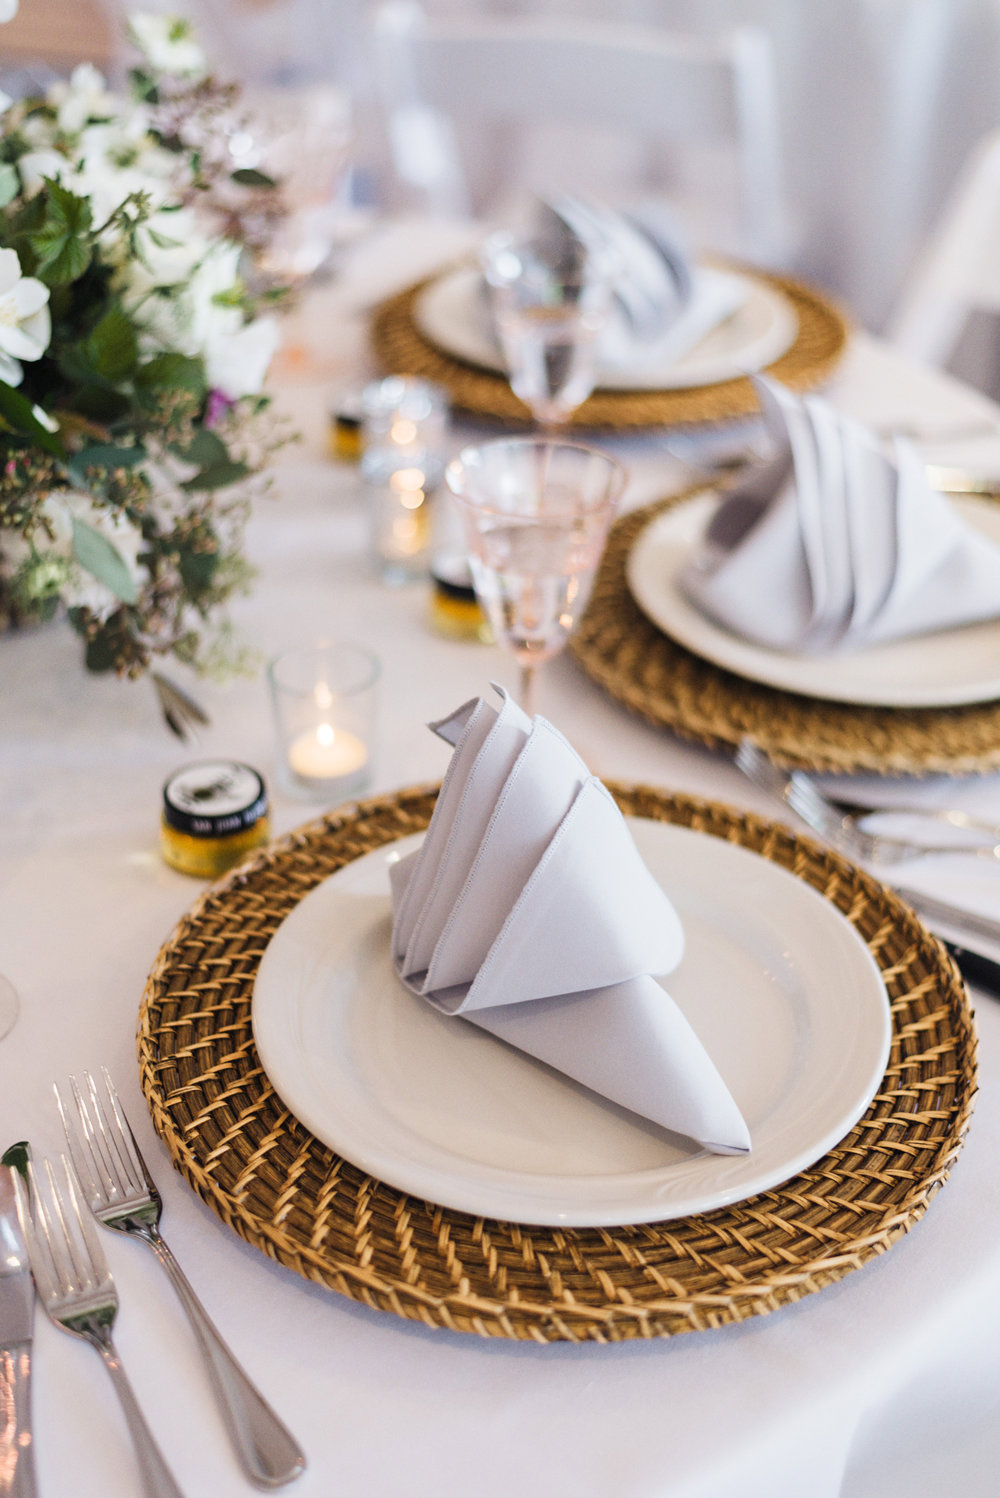 Unique napkin fold and rattan chargers set the tone for this romantic Roche Harbor wedding